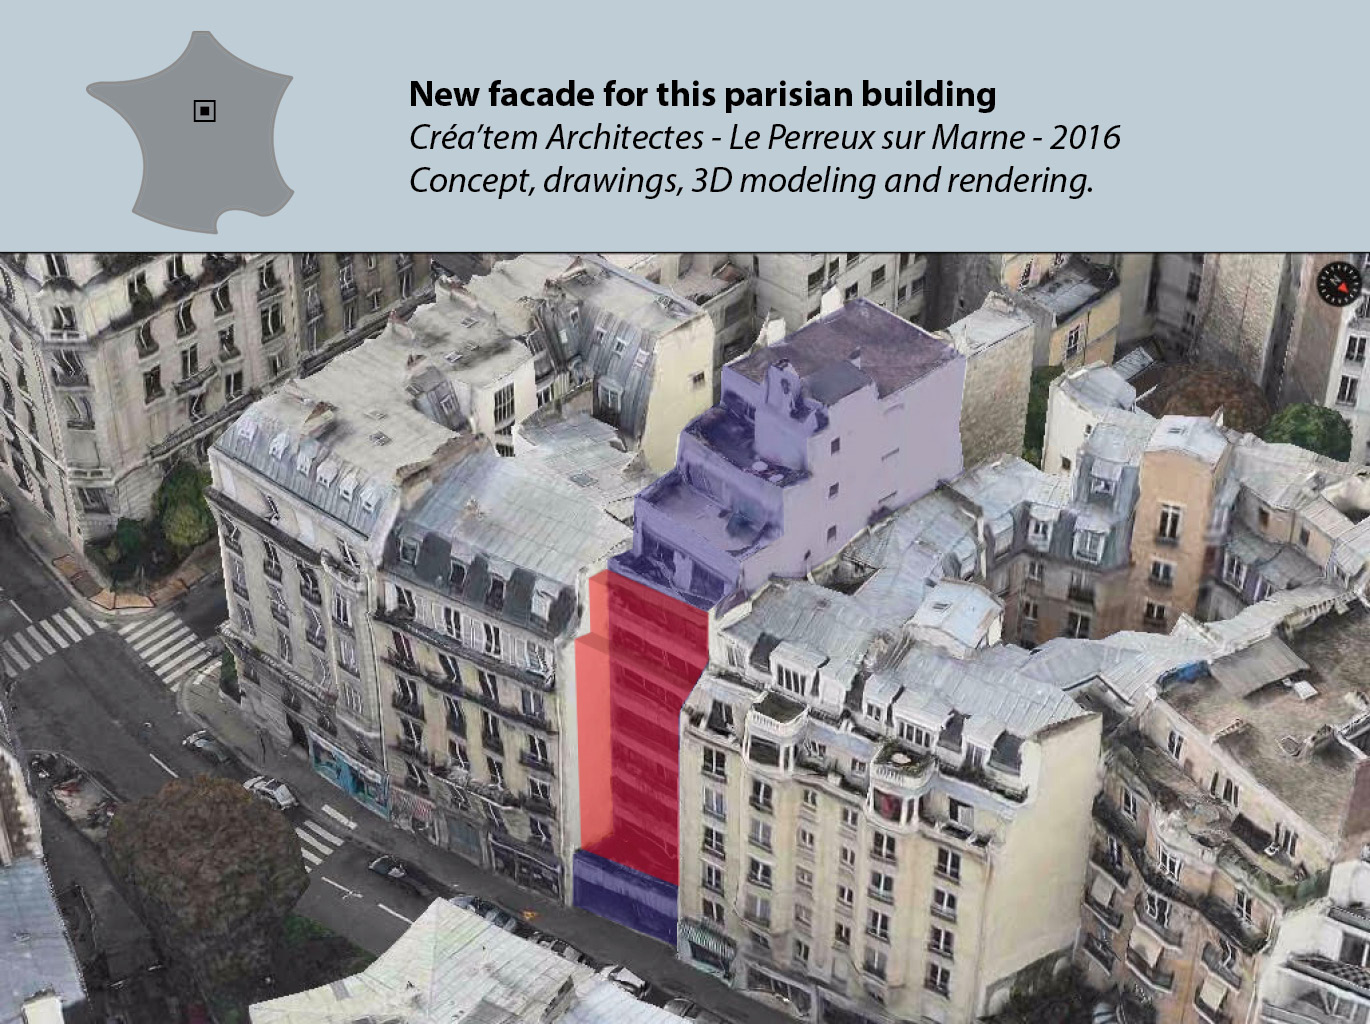 New parisian building facade